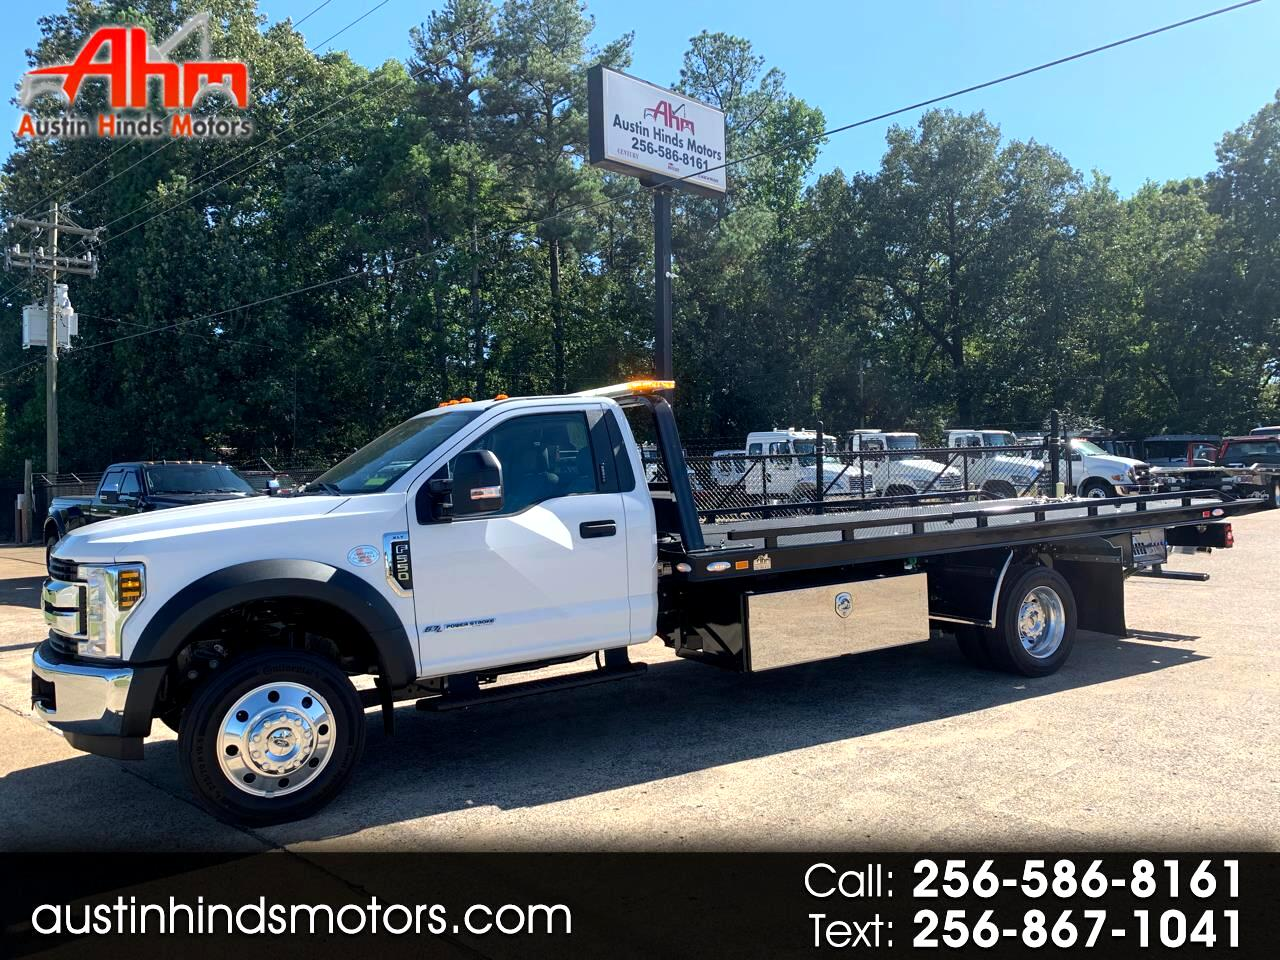 2019 Ford F-550 Super Duty Regular Cab 2WD DRW